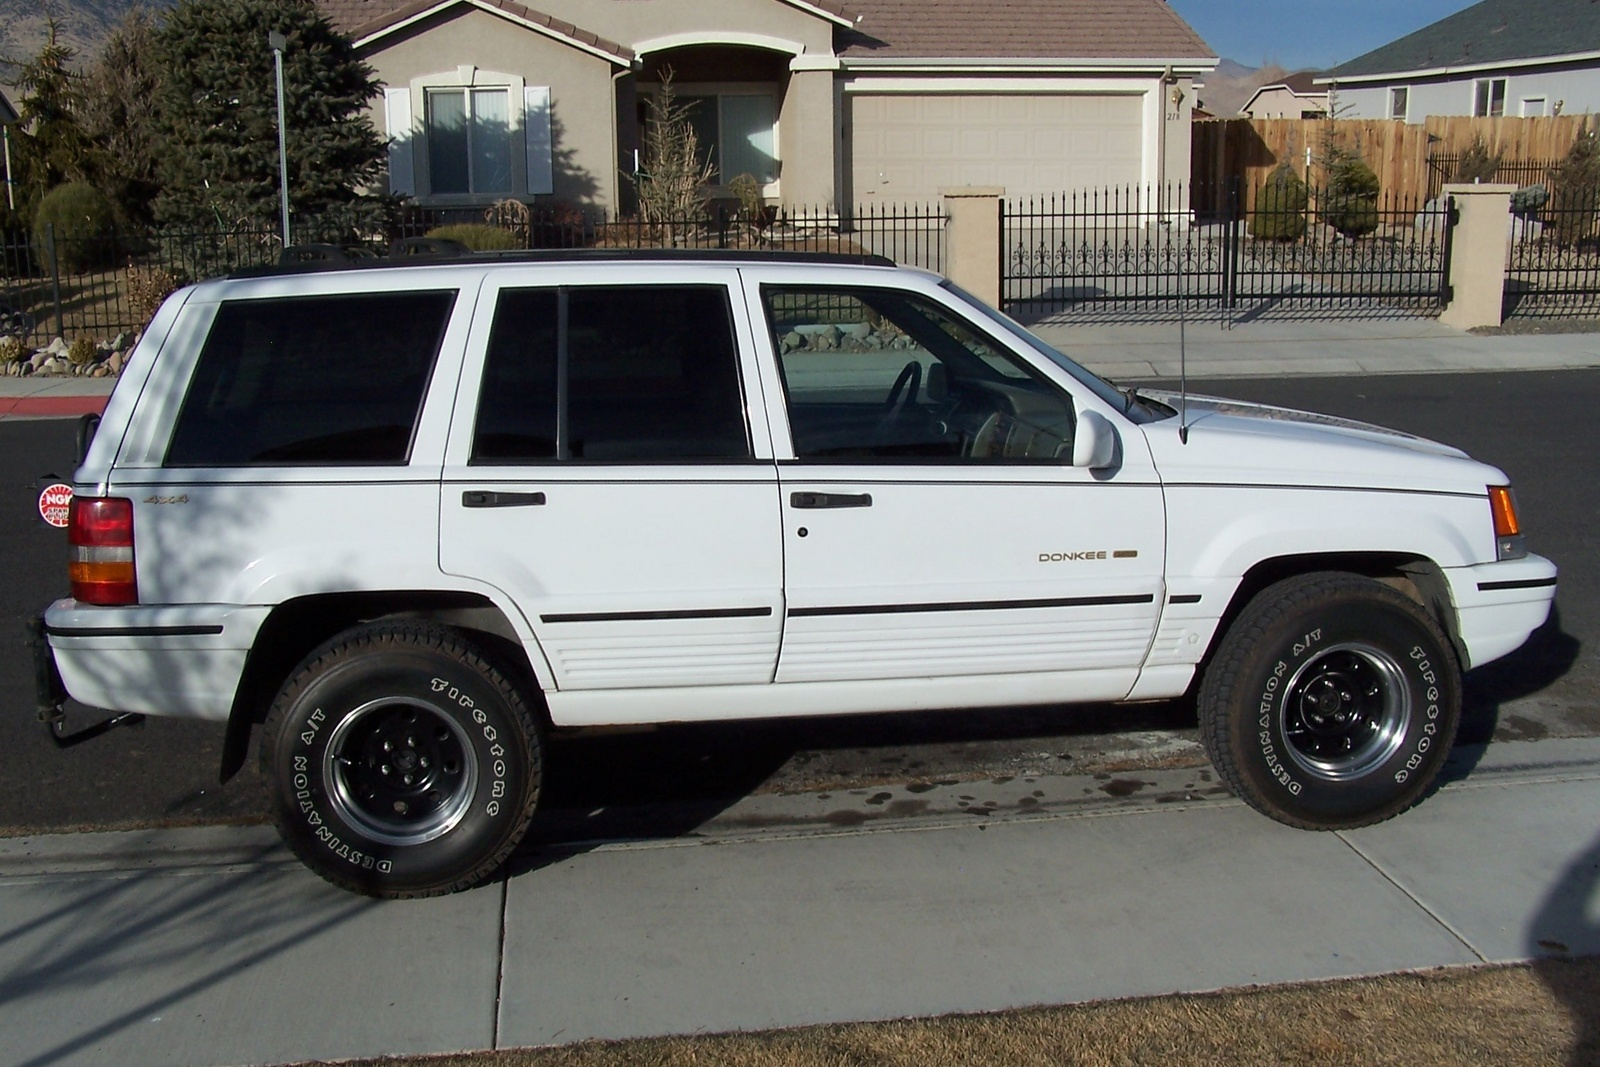 jeep grand cherokee questions 1998 jeep grand cherokee 4dr laredo 1996 Jeep Cherokee Water Pump 1998 jeep grand cherokee 4dr laredo suv 224 000 high way miles is it worth buying or should i run away